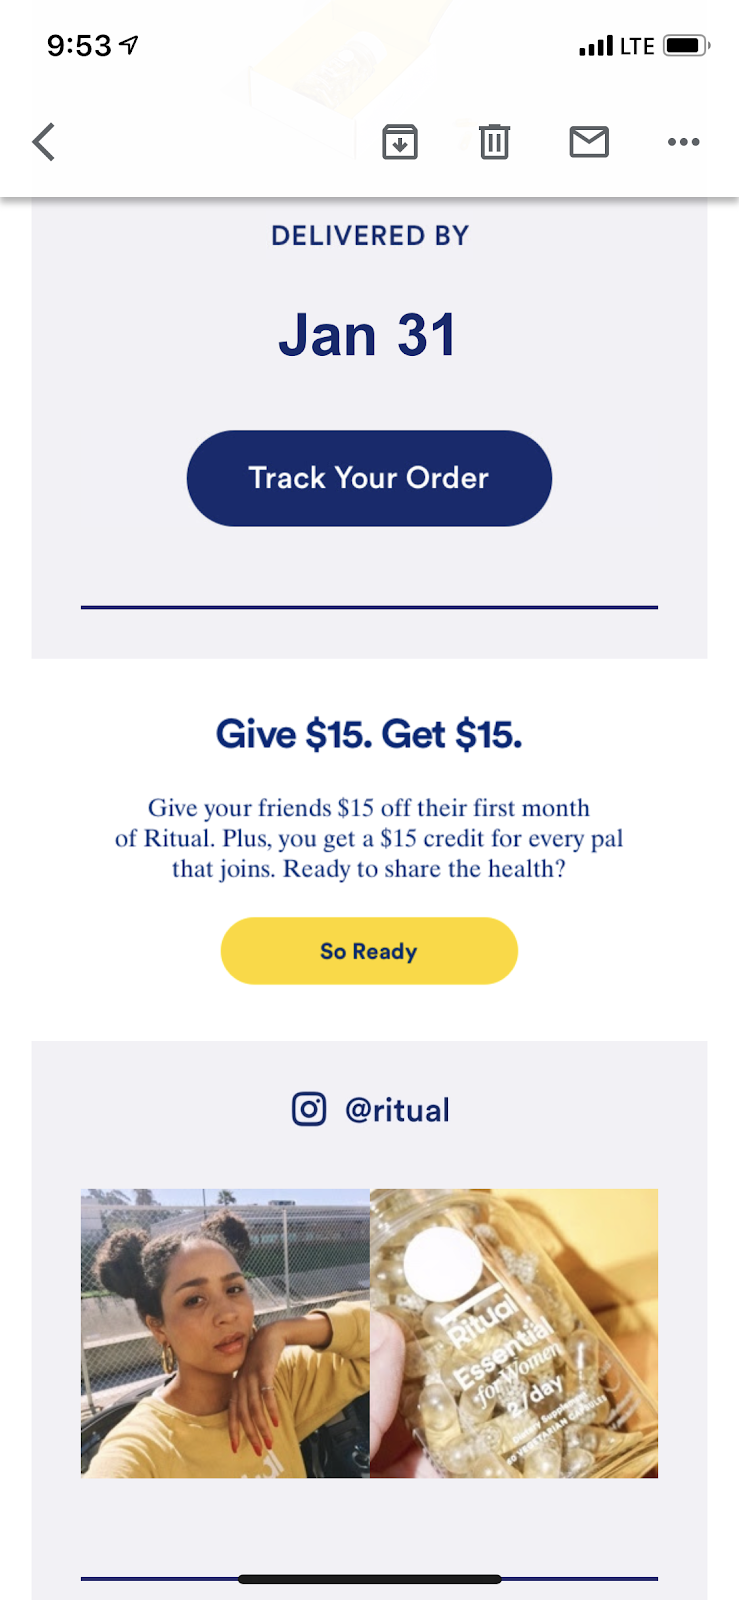 ritual vitamin customer referral program email example for viral growth